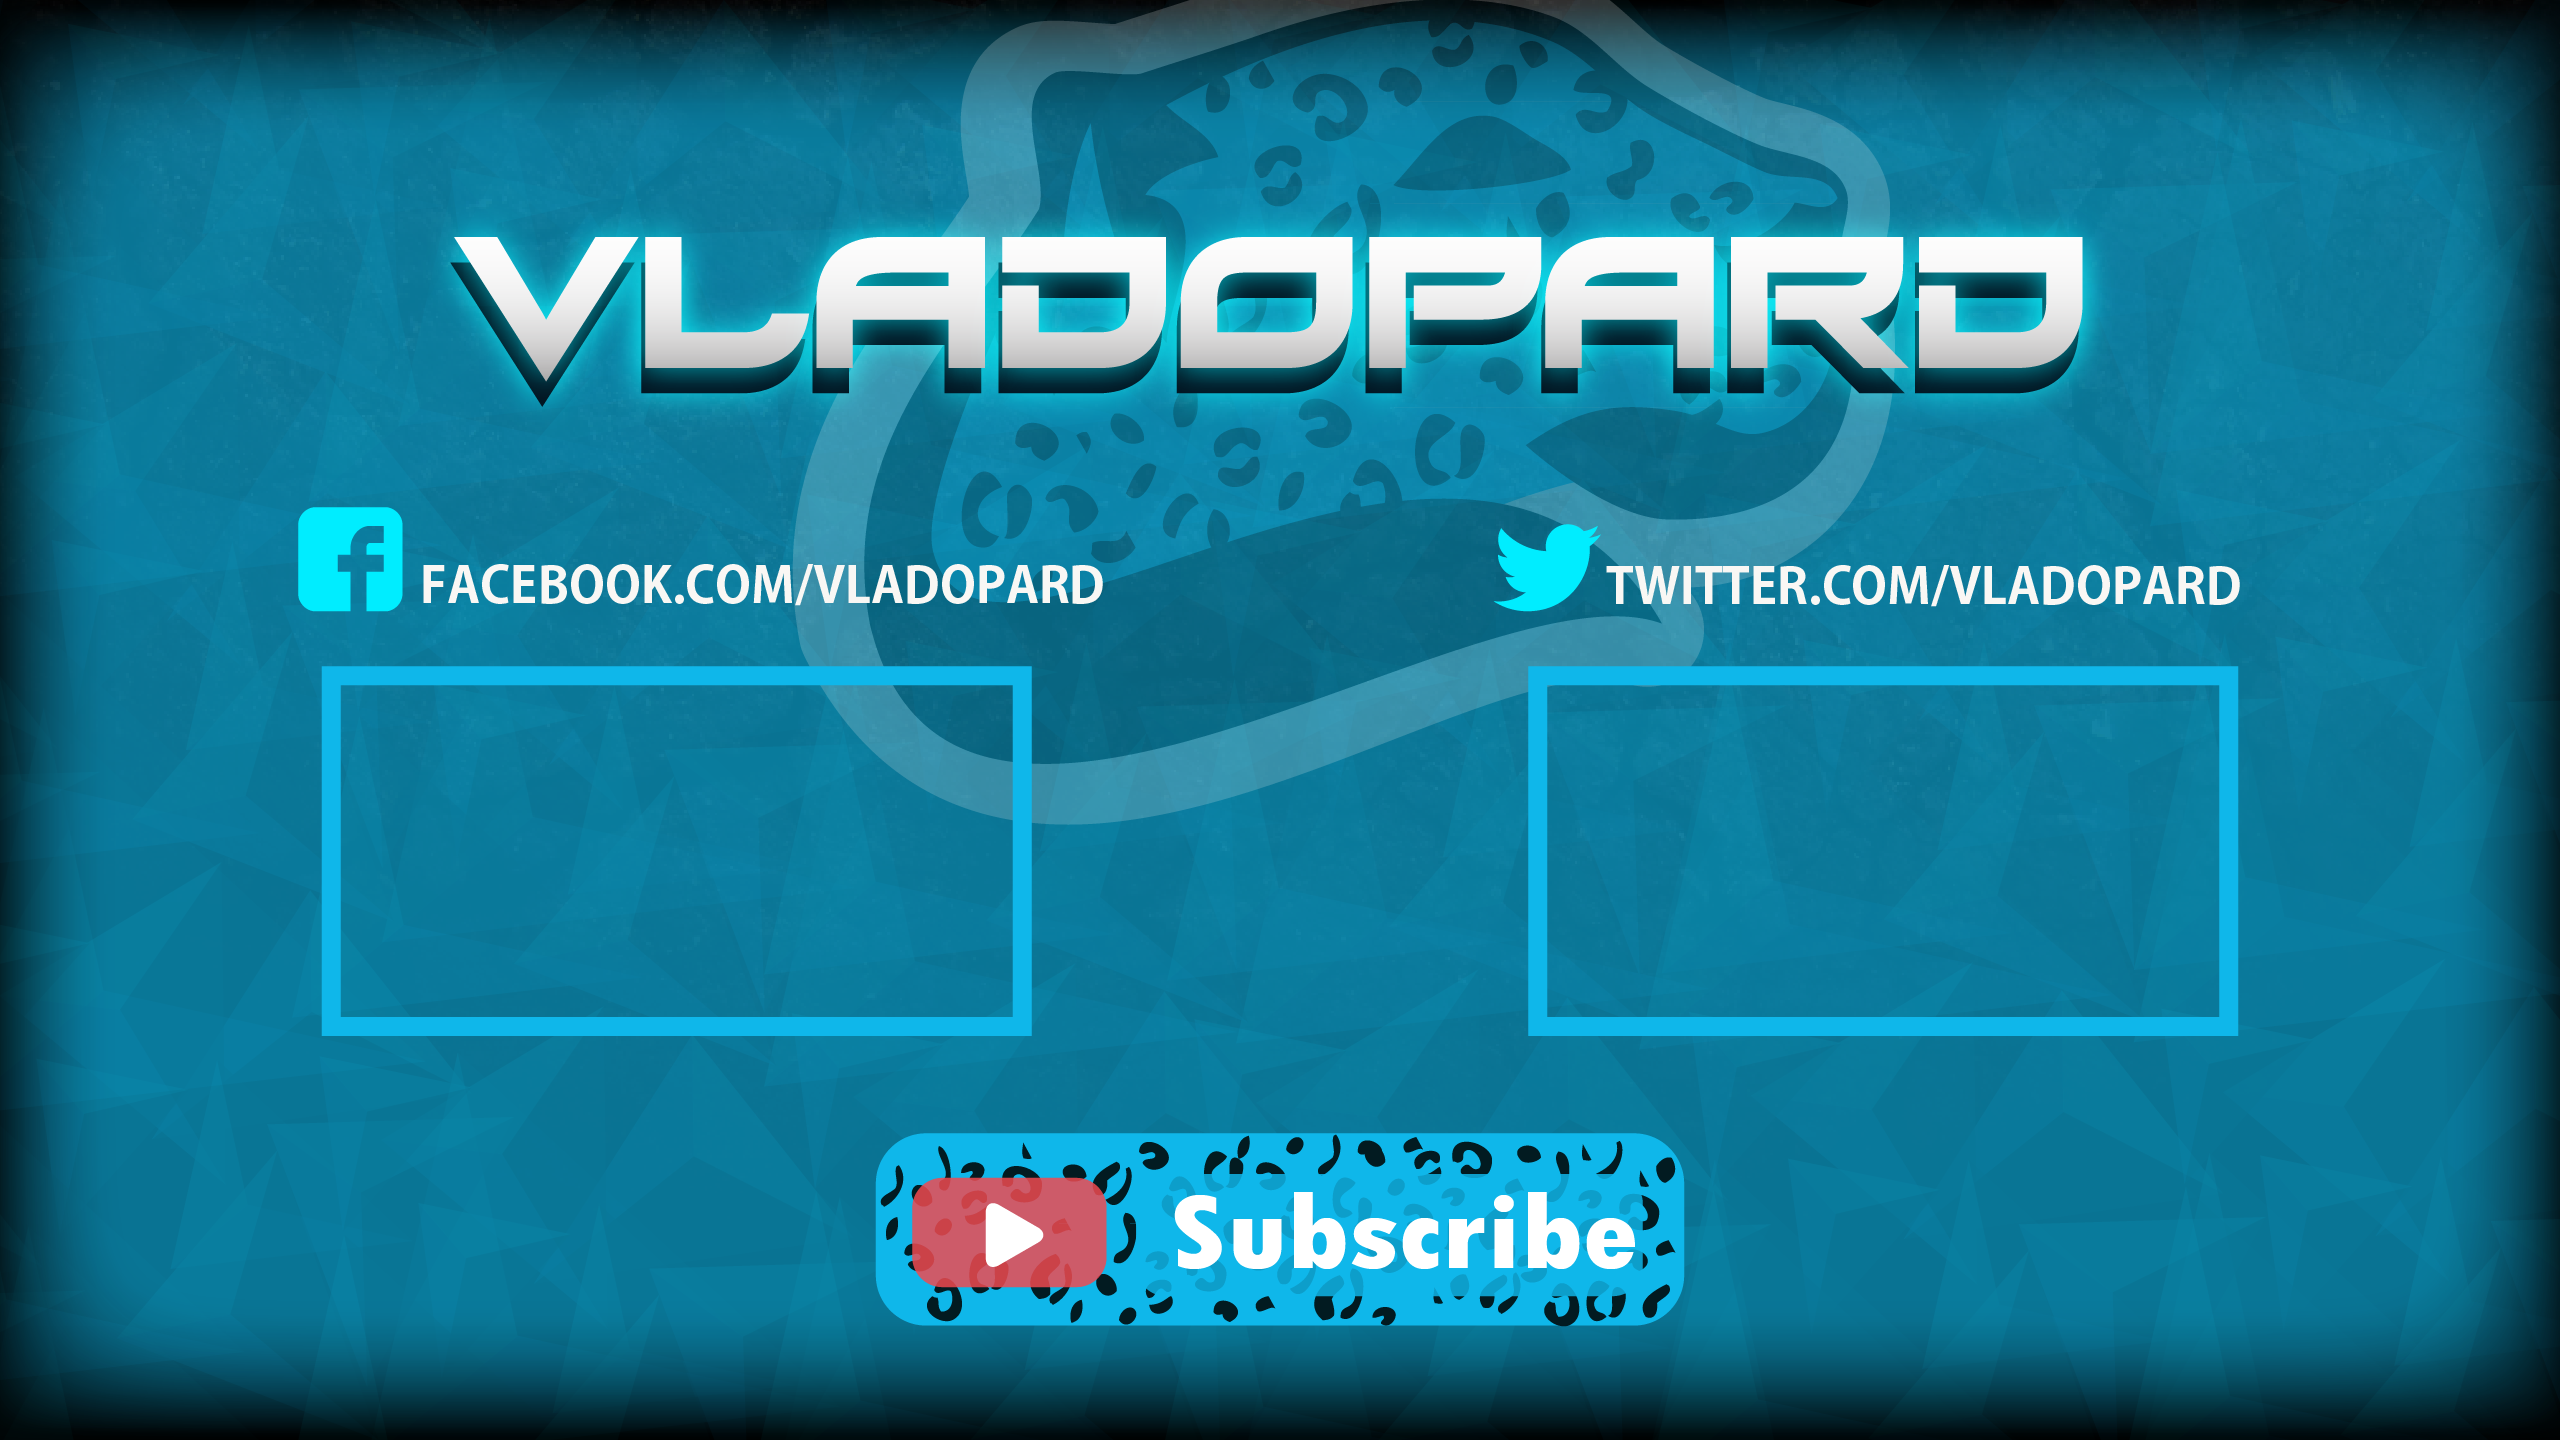 Vladopard YouTube Channel Design